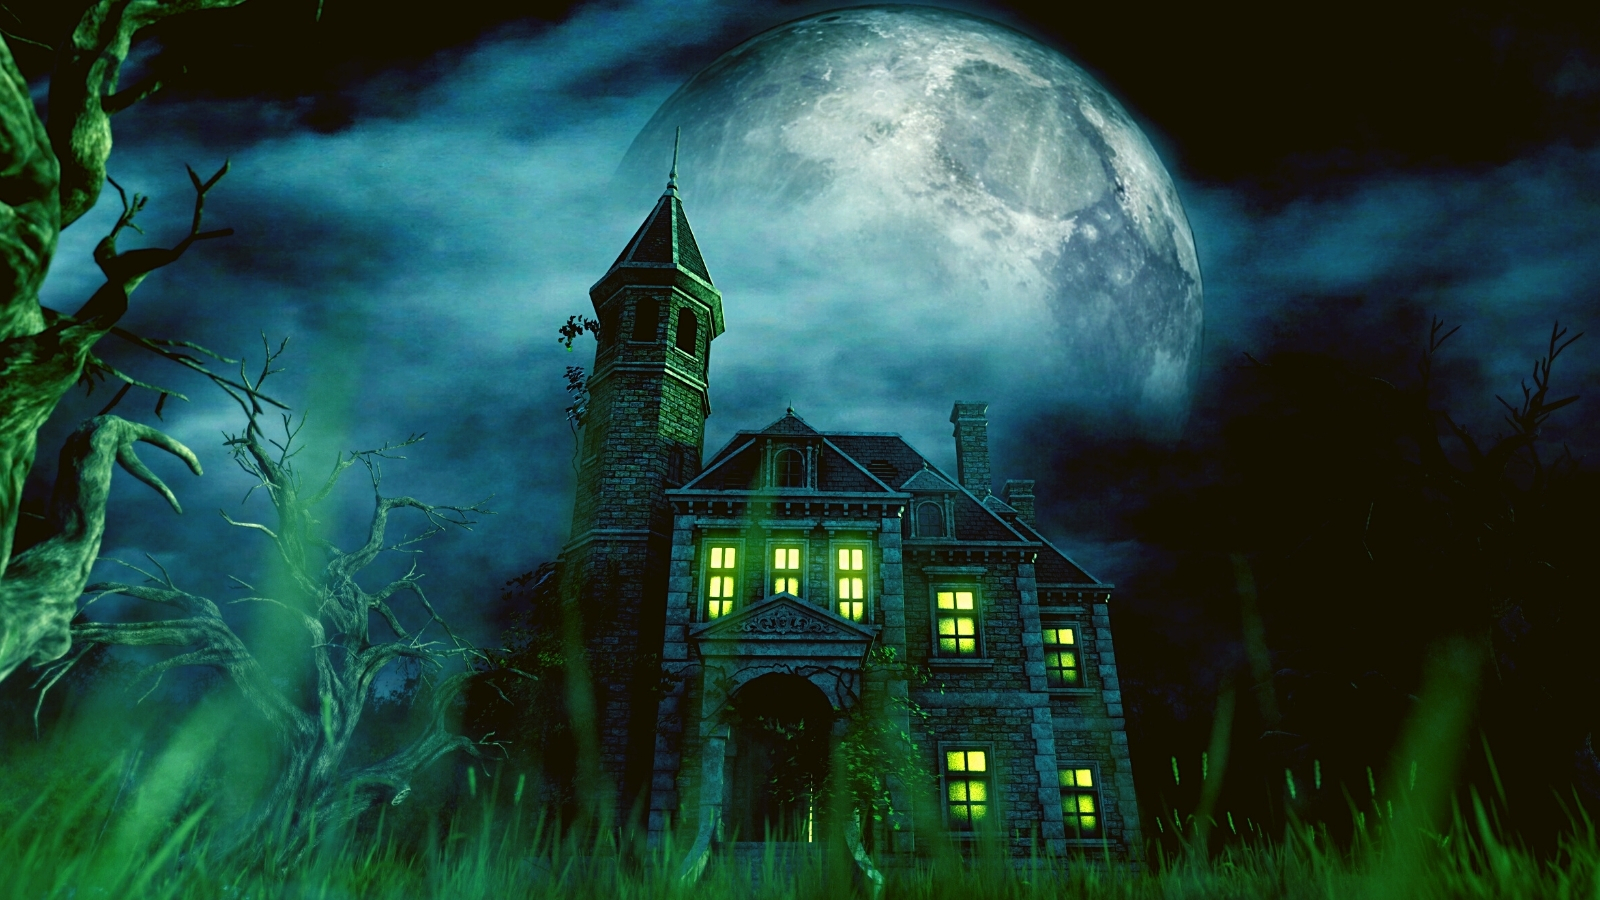 Haunted house against a large full moon